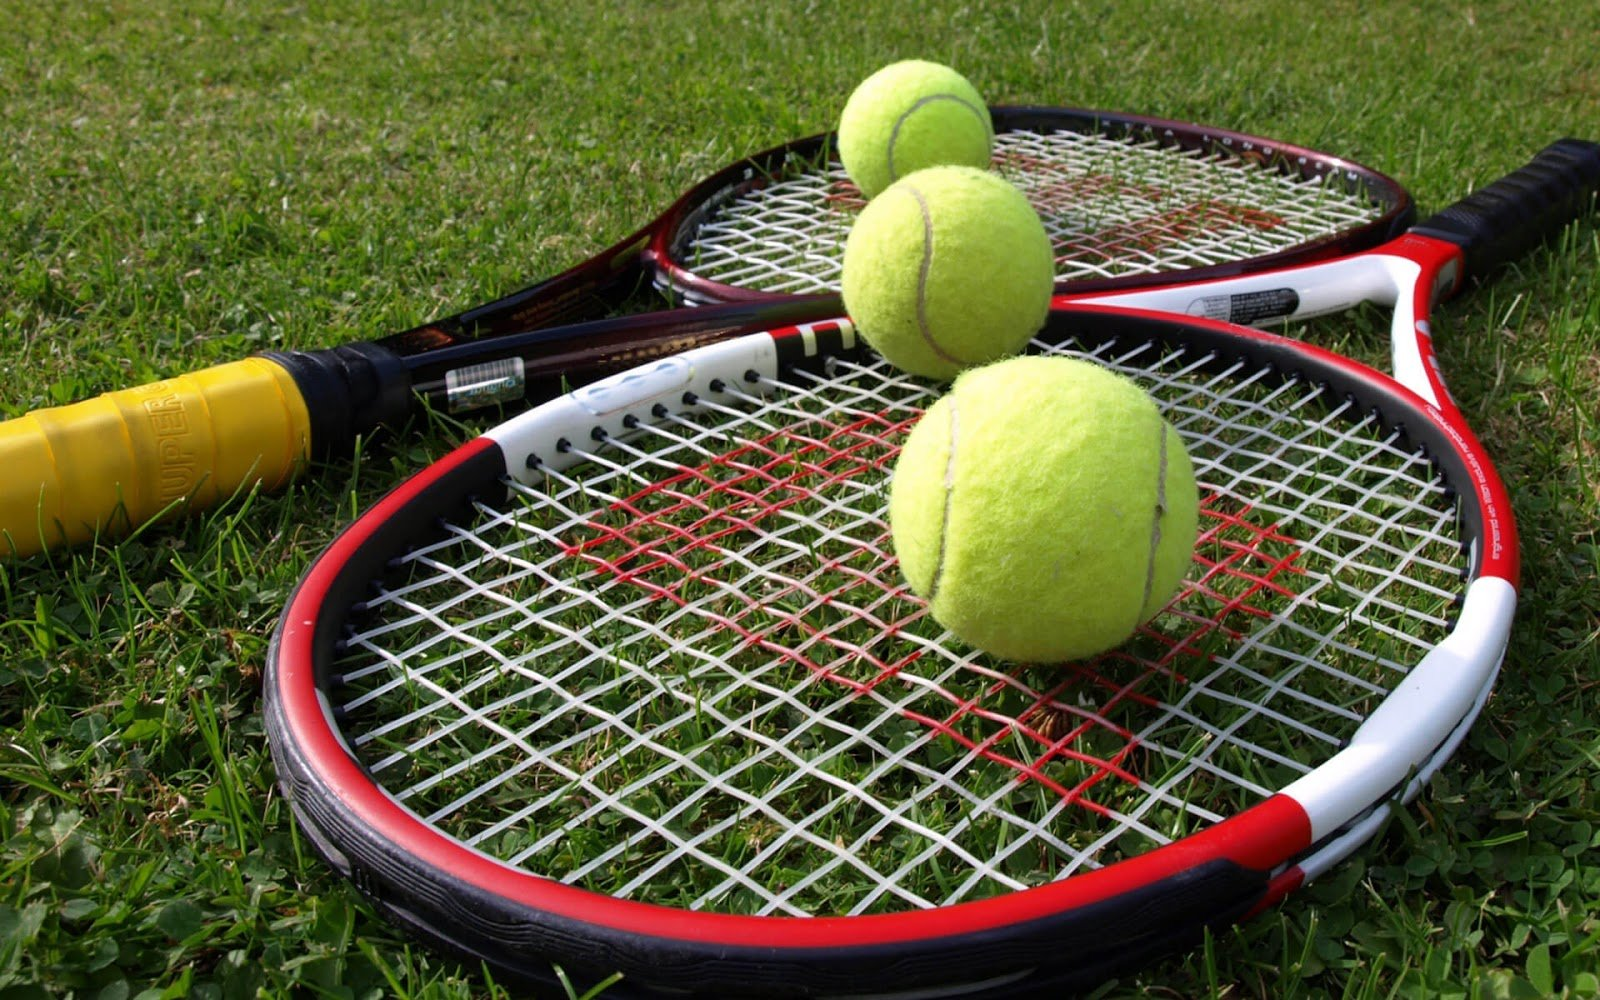 RDS2 en direct du tournoi de Wimbledon 2016